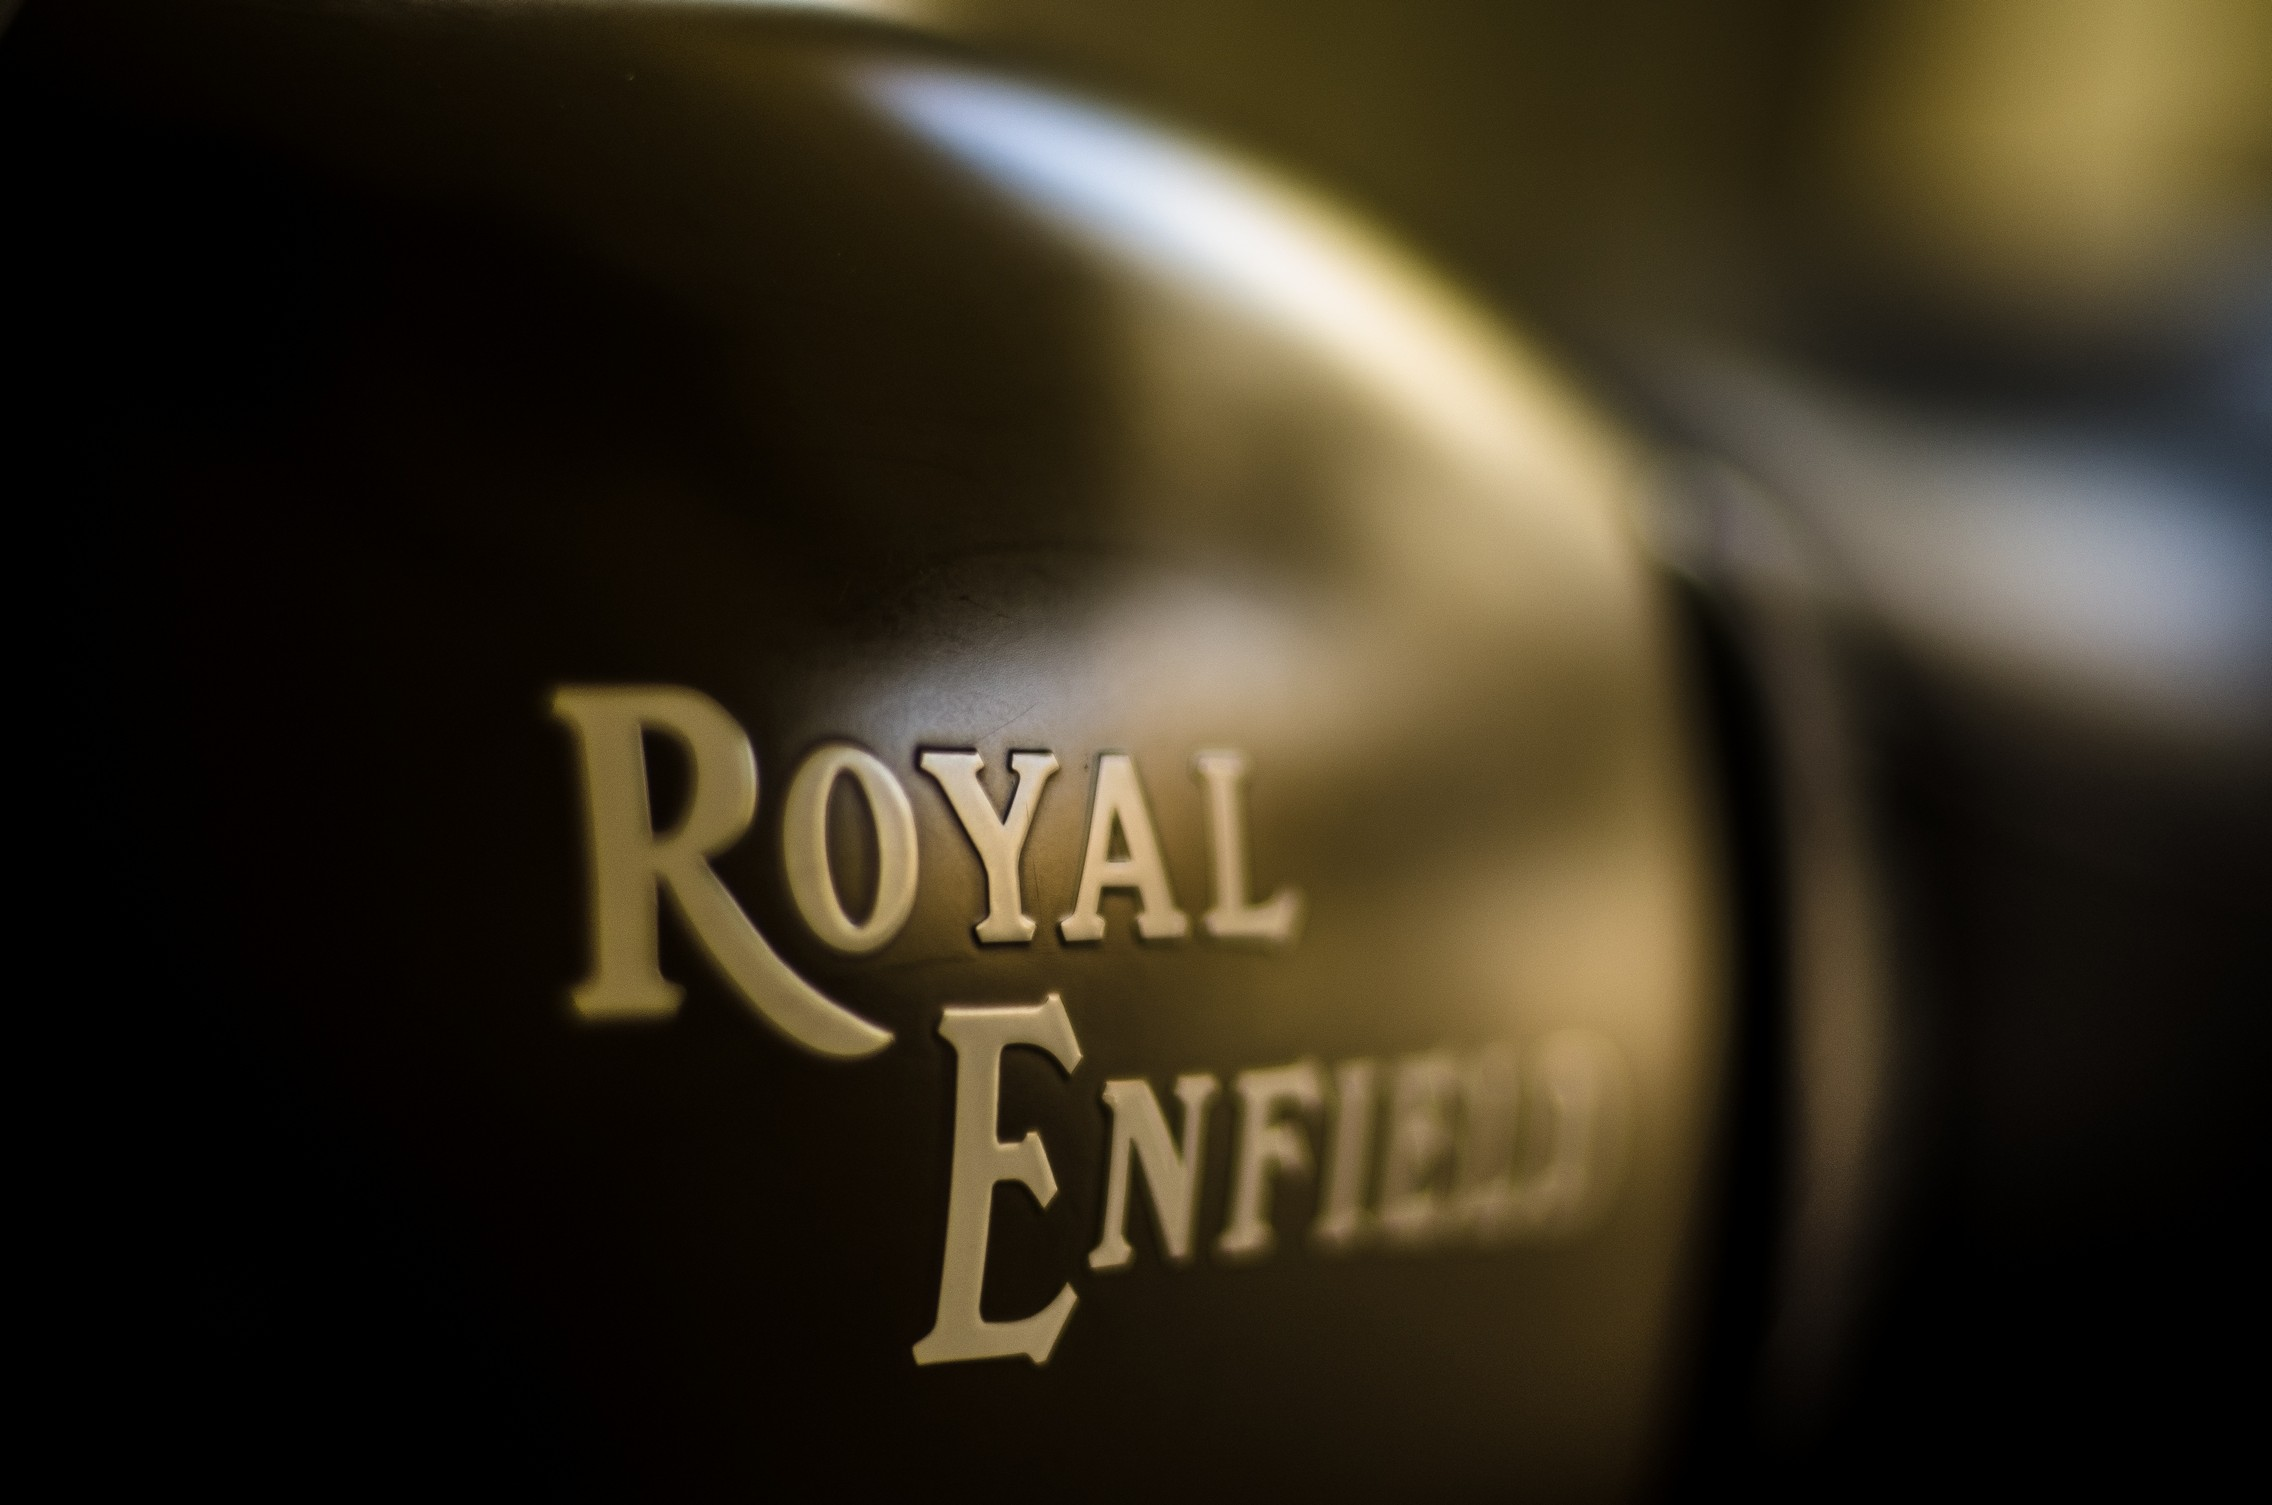 Hd wallpaper royal enfield - Gopalakrishnan Royal Logo Wallpaper